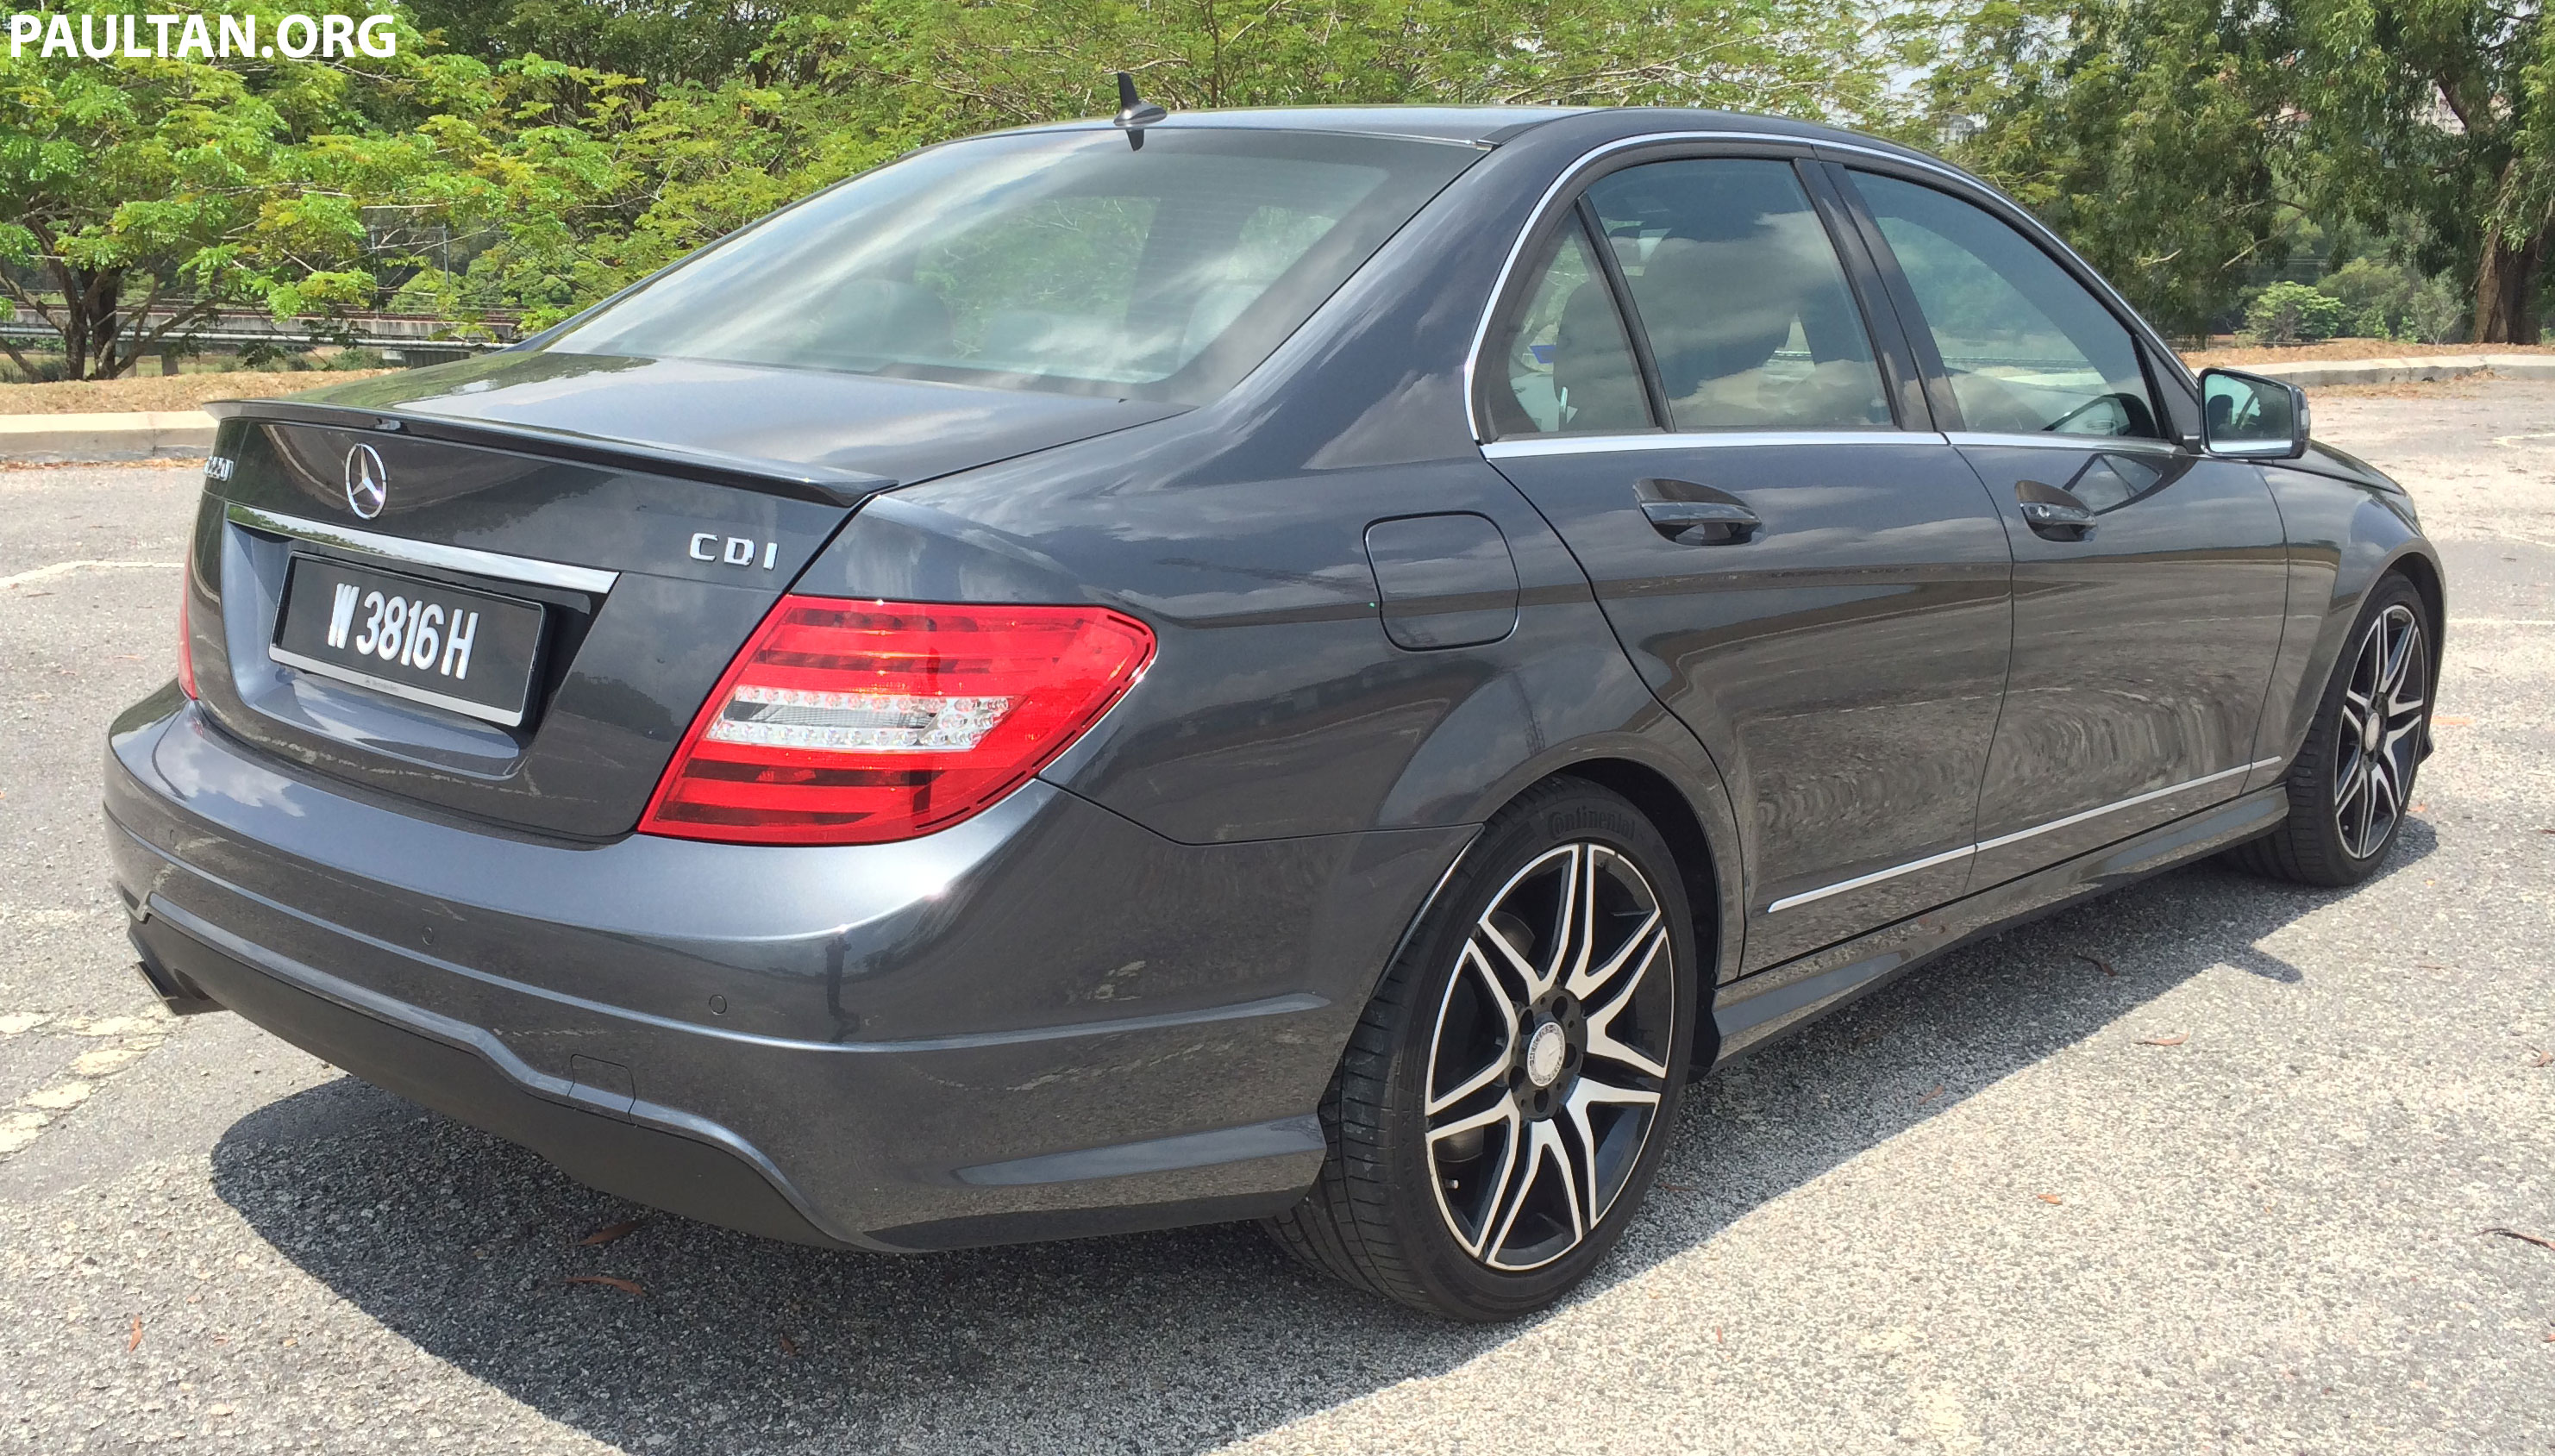 diesel in for used classics leather sale benz lhd pistonheads estate choice auto yorkshire cars mercedes of rhd classifieds saloon